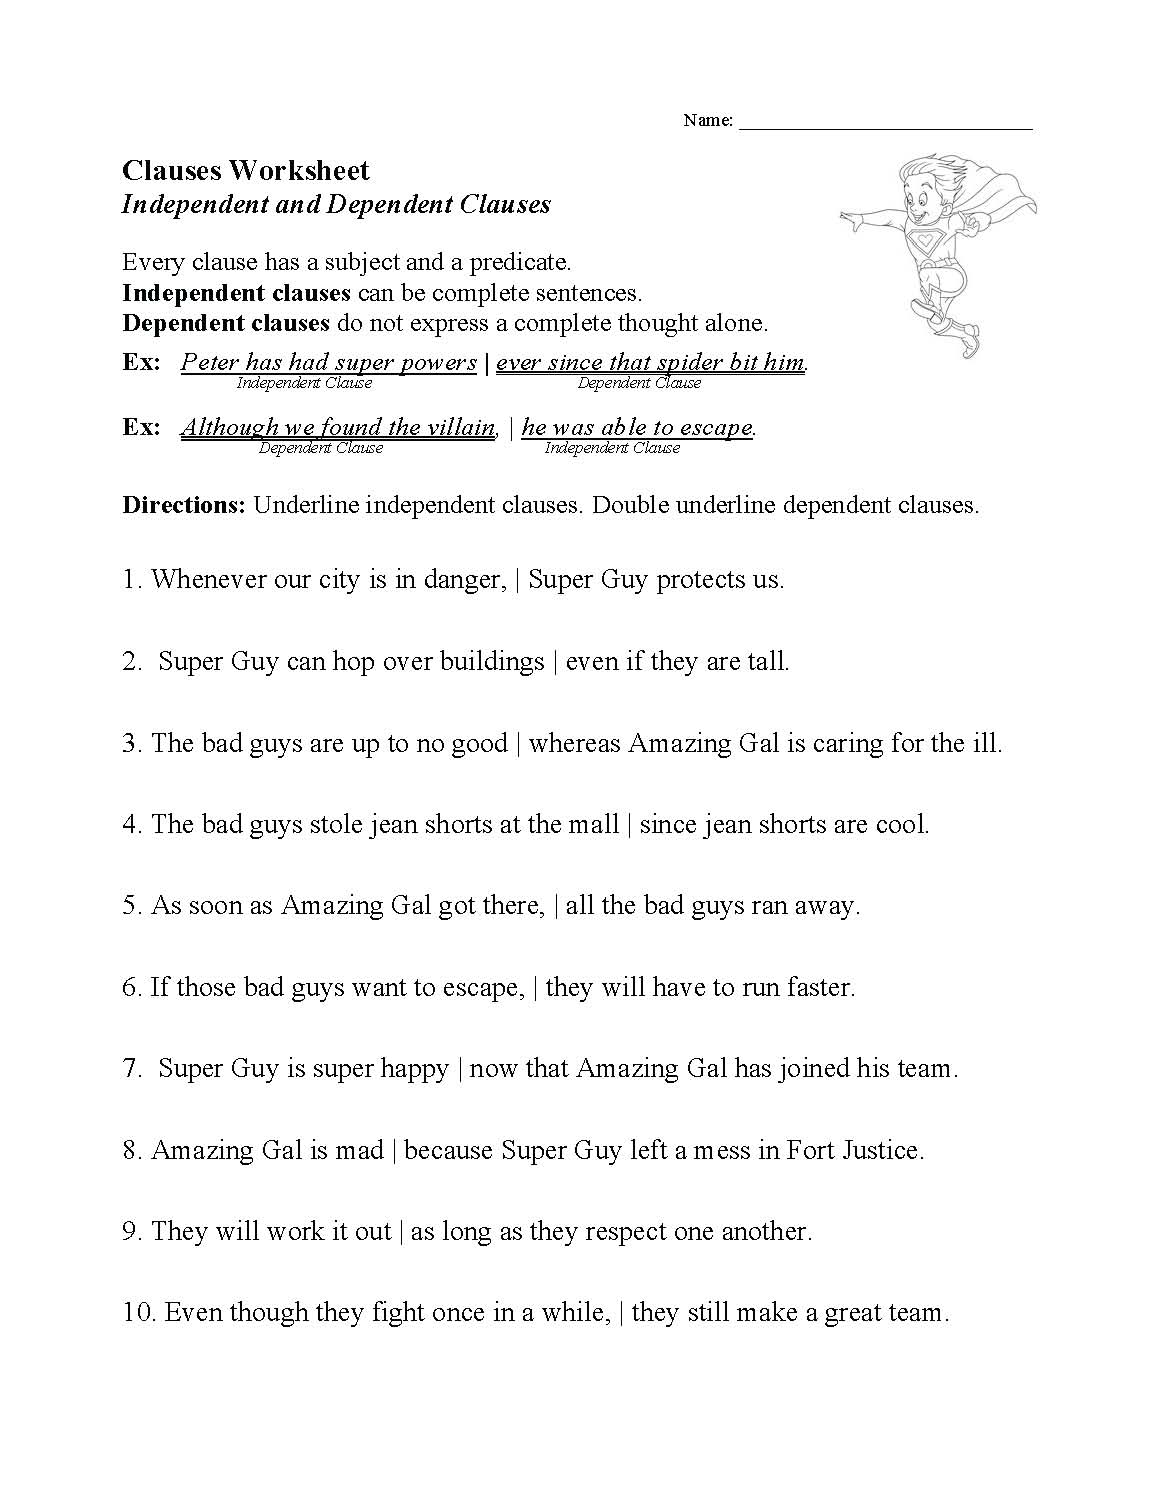 Clauses Worksheet Sentence Structure Activity Looking for worksheets about sentence structure skills? worksheet land